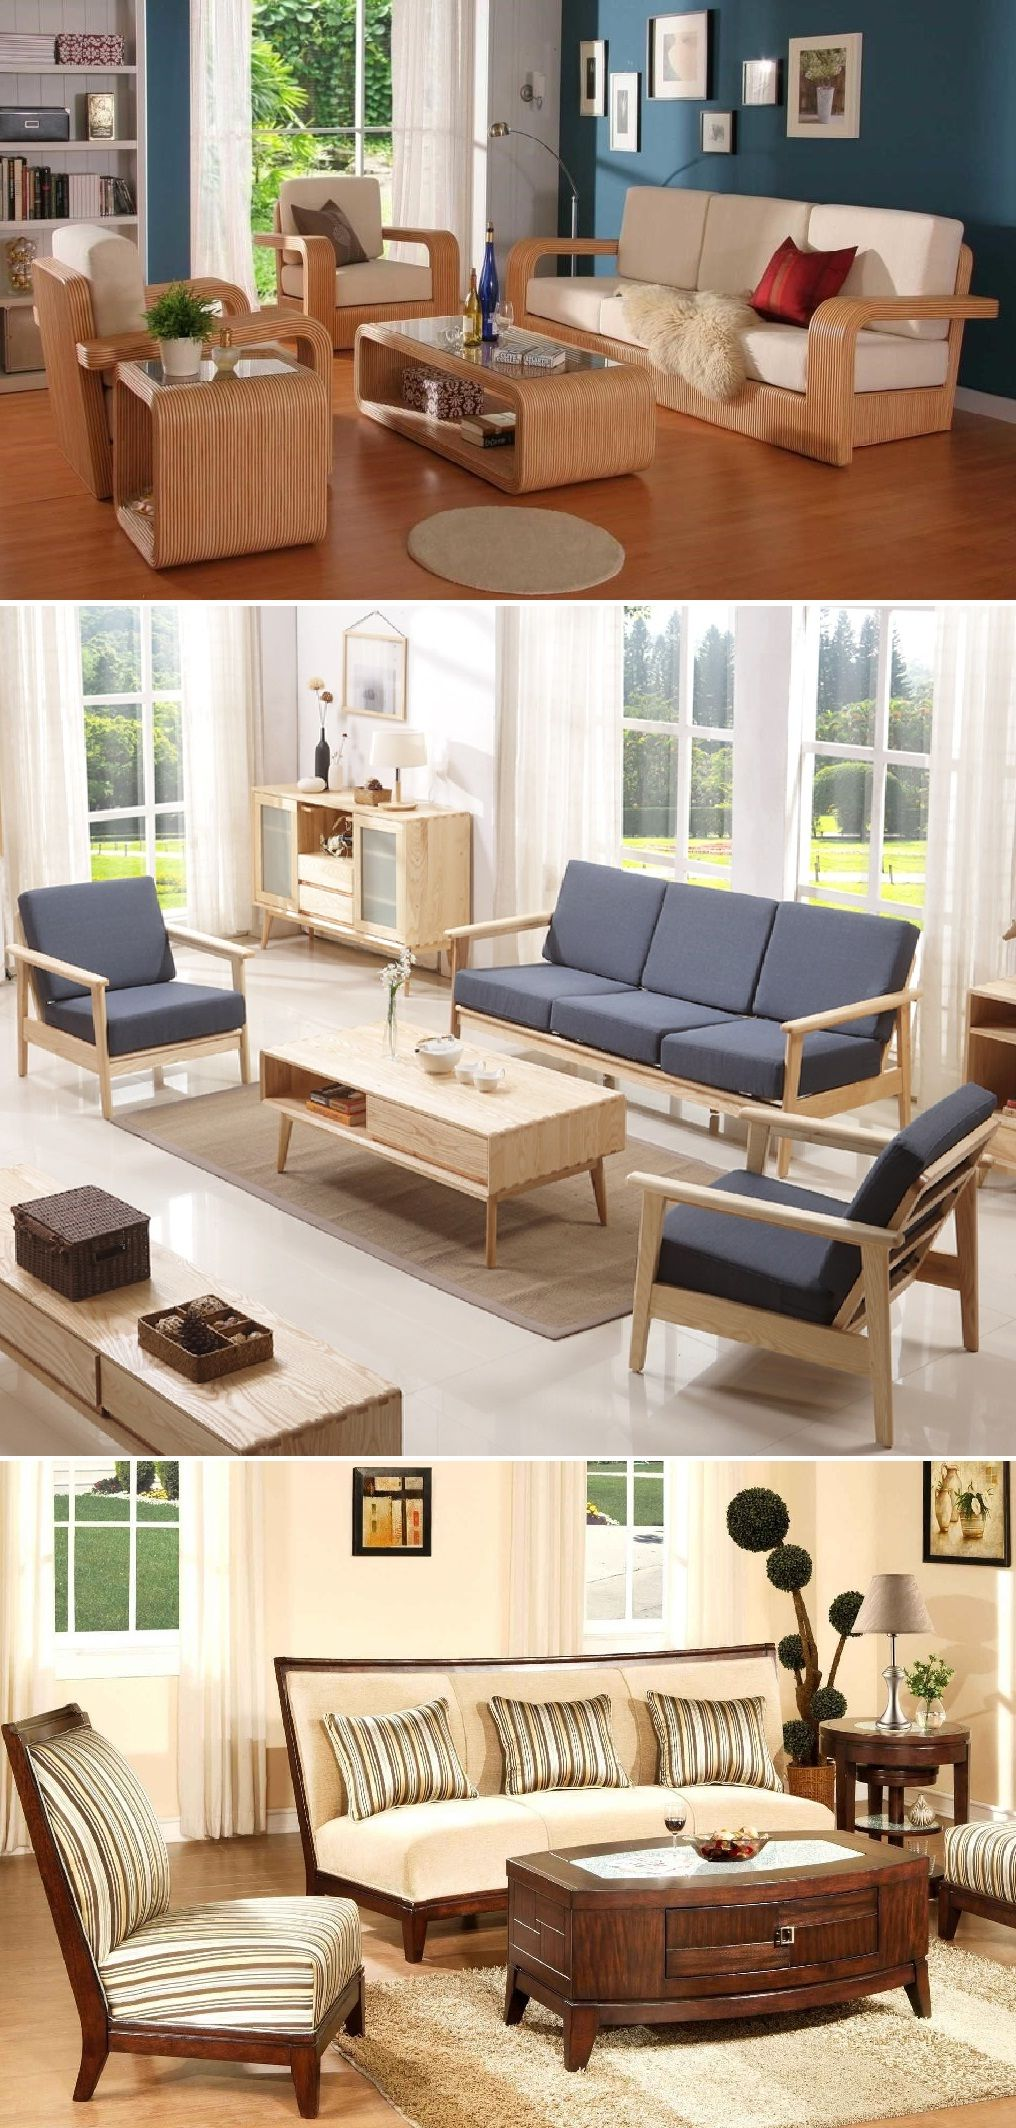 Simple Wooden Sofa Design For Drawing Room Sofa Set Designs Living Room Sofa Design Wooden Sofa Designs